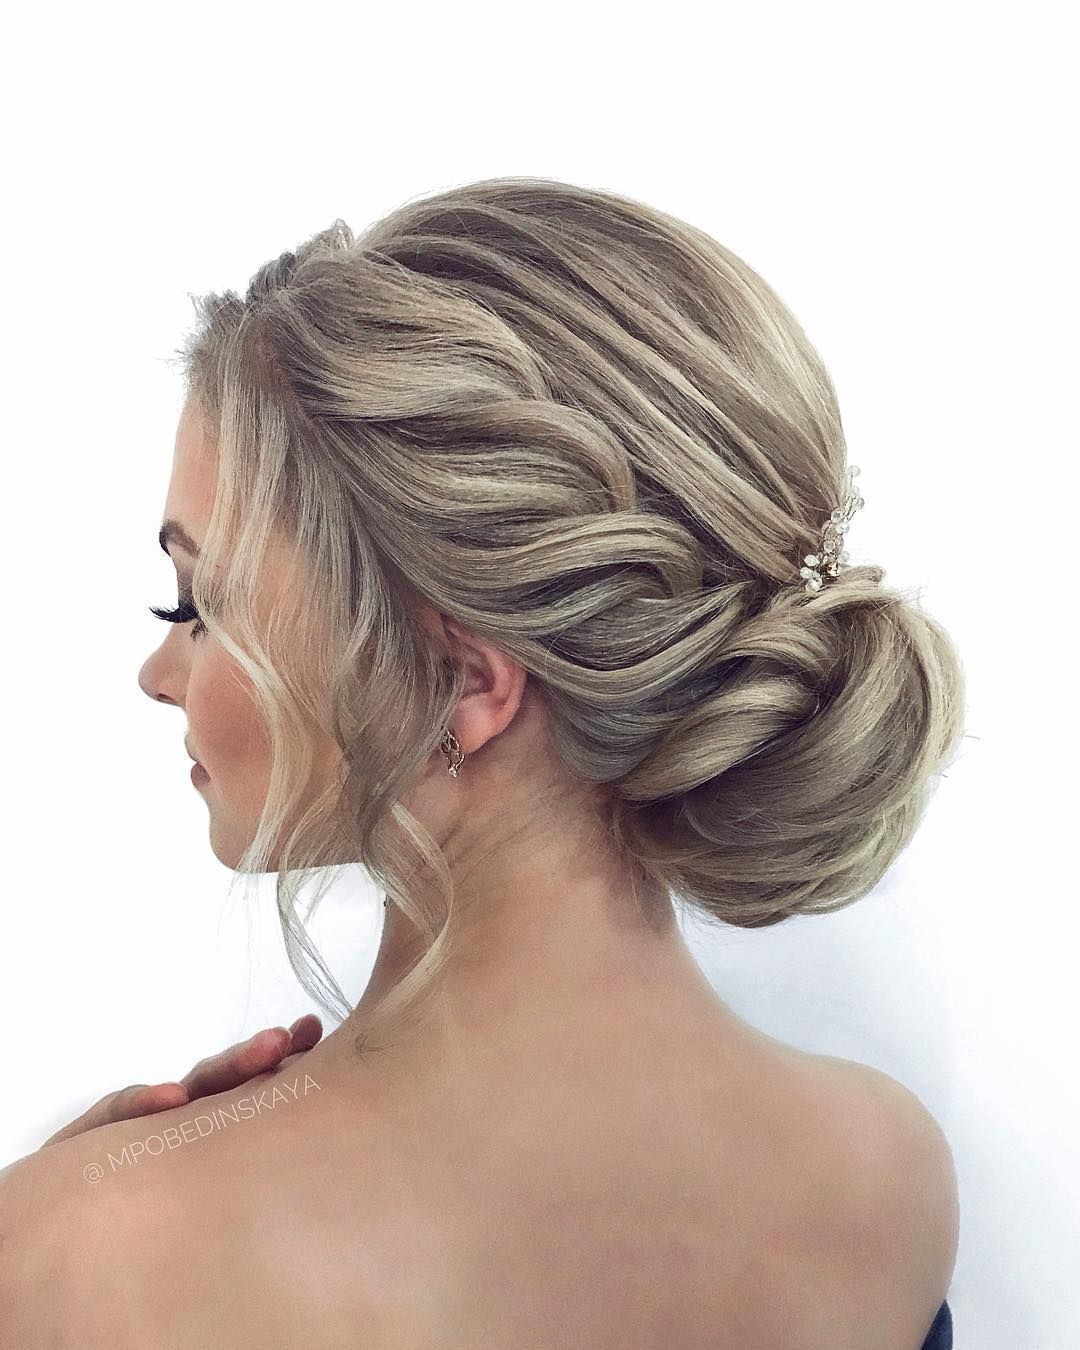 romantic hairstyle to inspire you | updos | hair styles